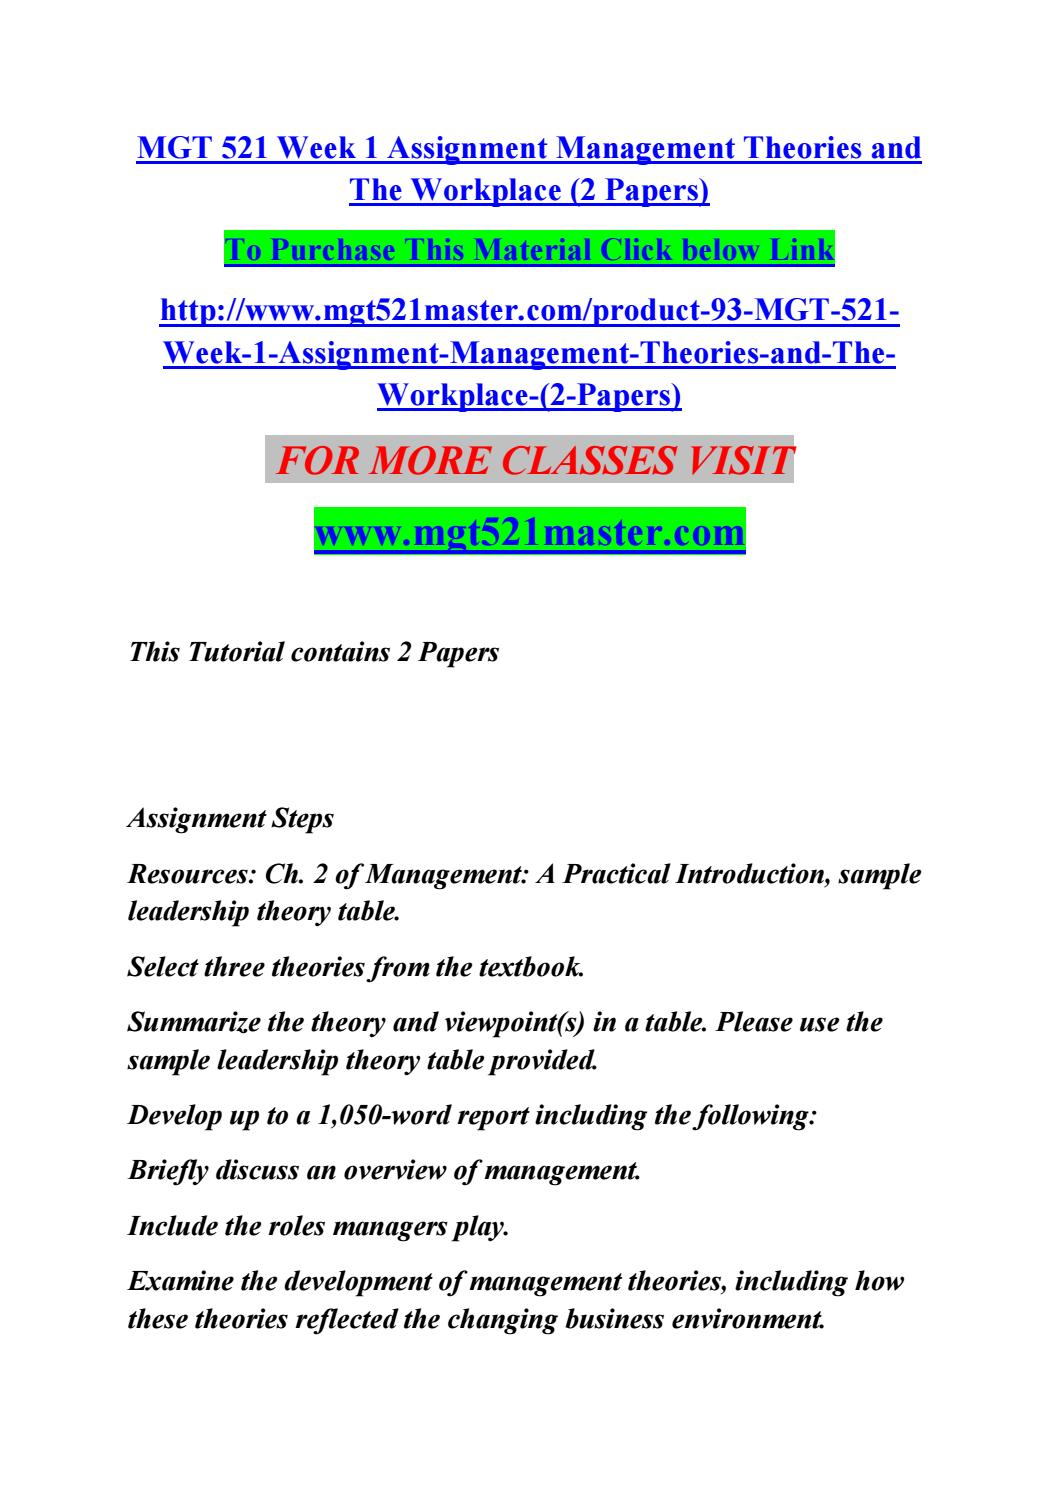 assignment on management thought Unit one: the evolution of management thought  part one: exercises self-assessment: mcgregor theory x and theory y leadership behavior, pages 462-63 in lussier part two: email application activities (individual assignment) prepare a memo outlining which school(s) of management thought best describes your manager be sure to explain your answer.